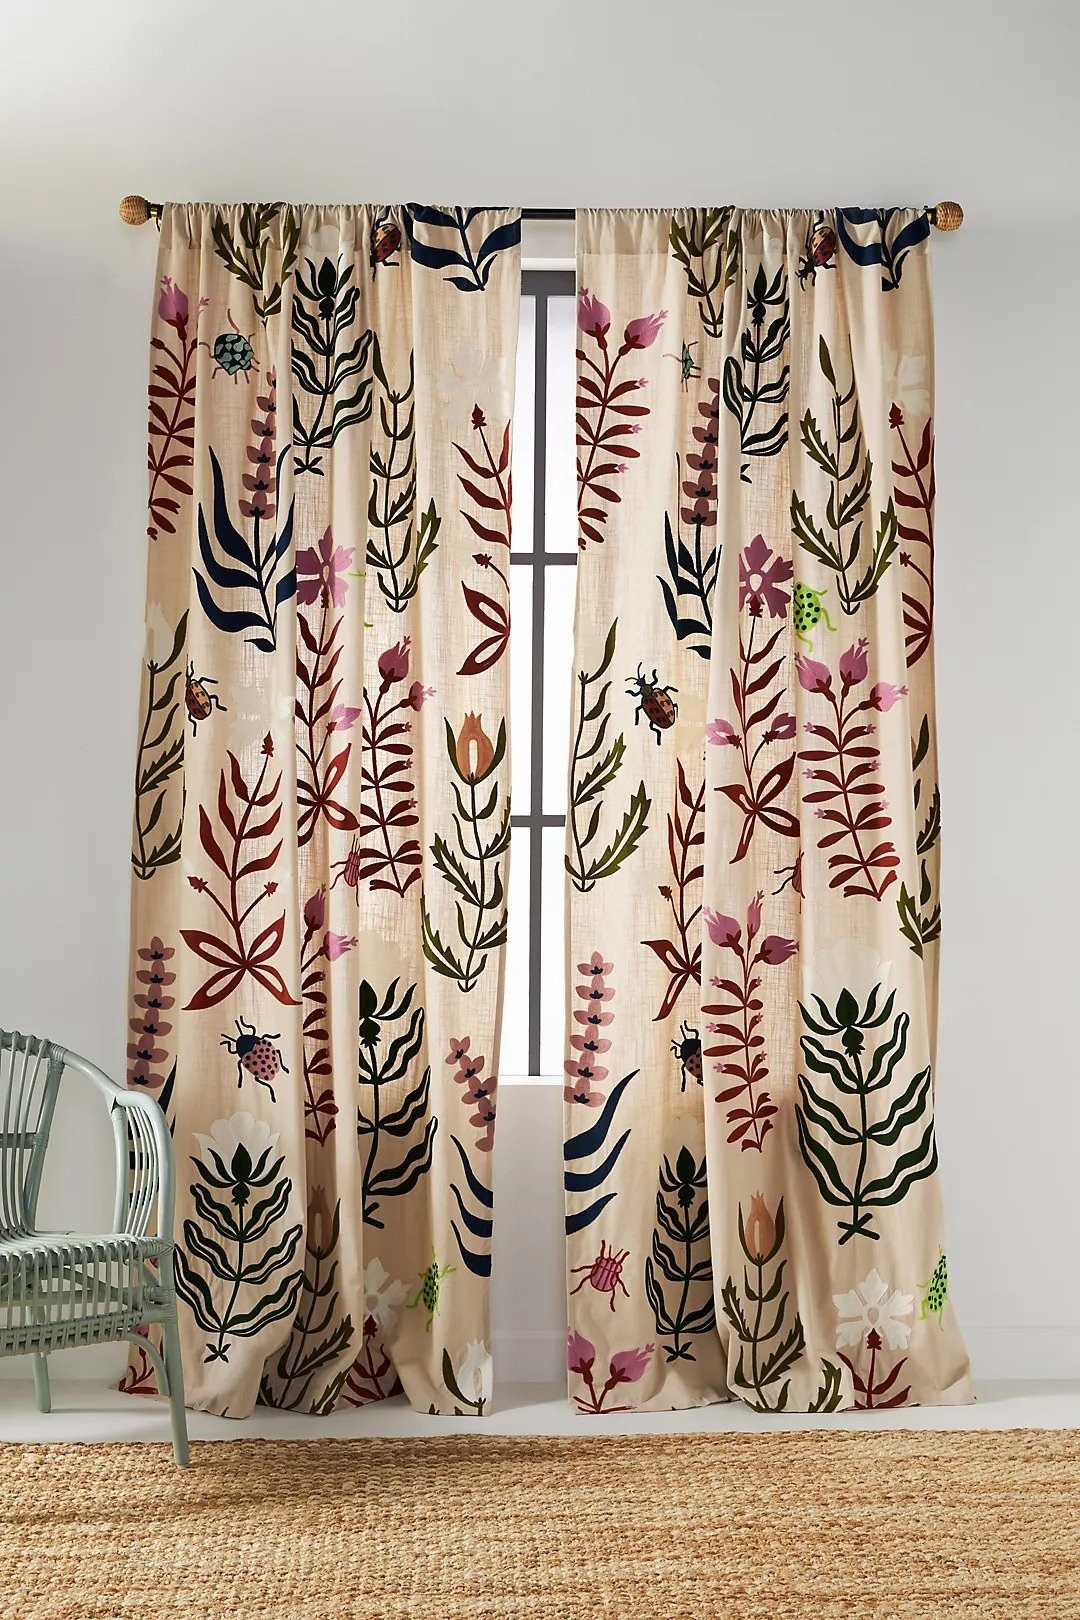 tan curtains with colorful flowers and bugs embroidered on top